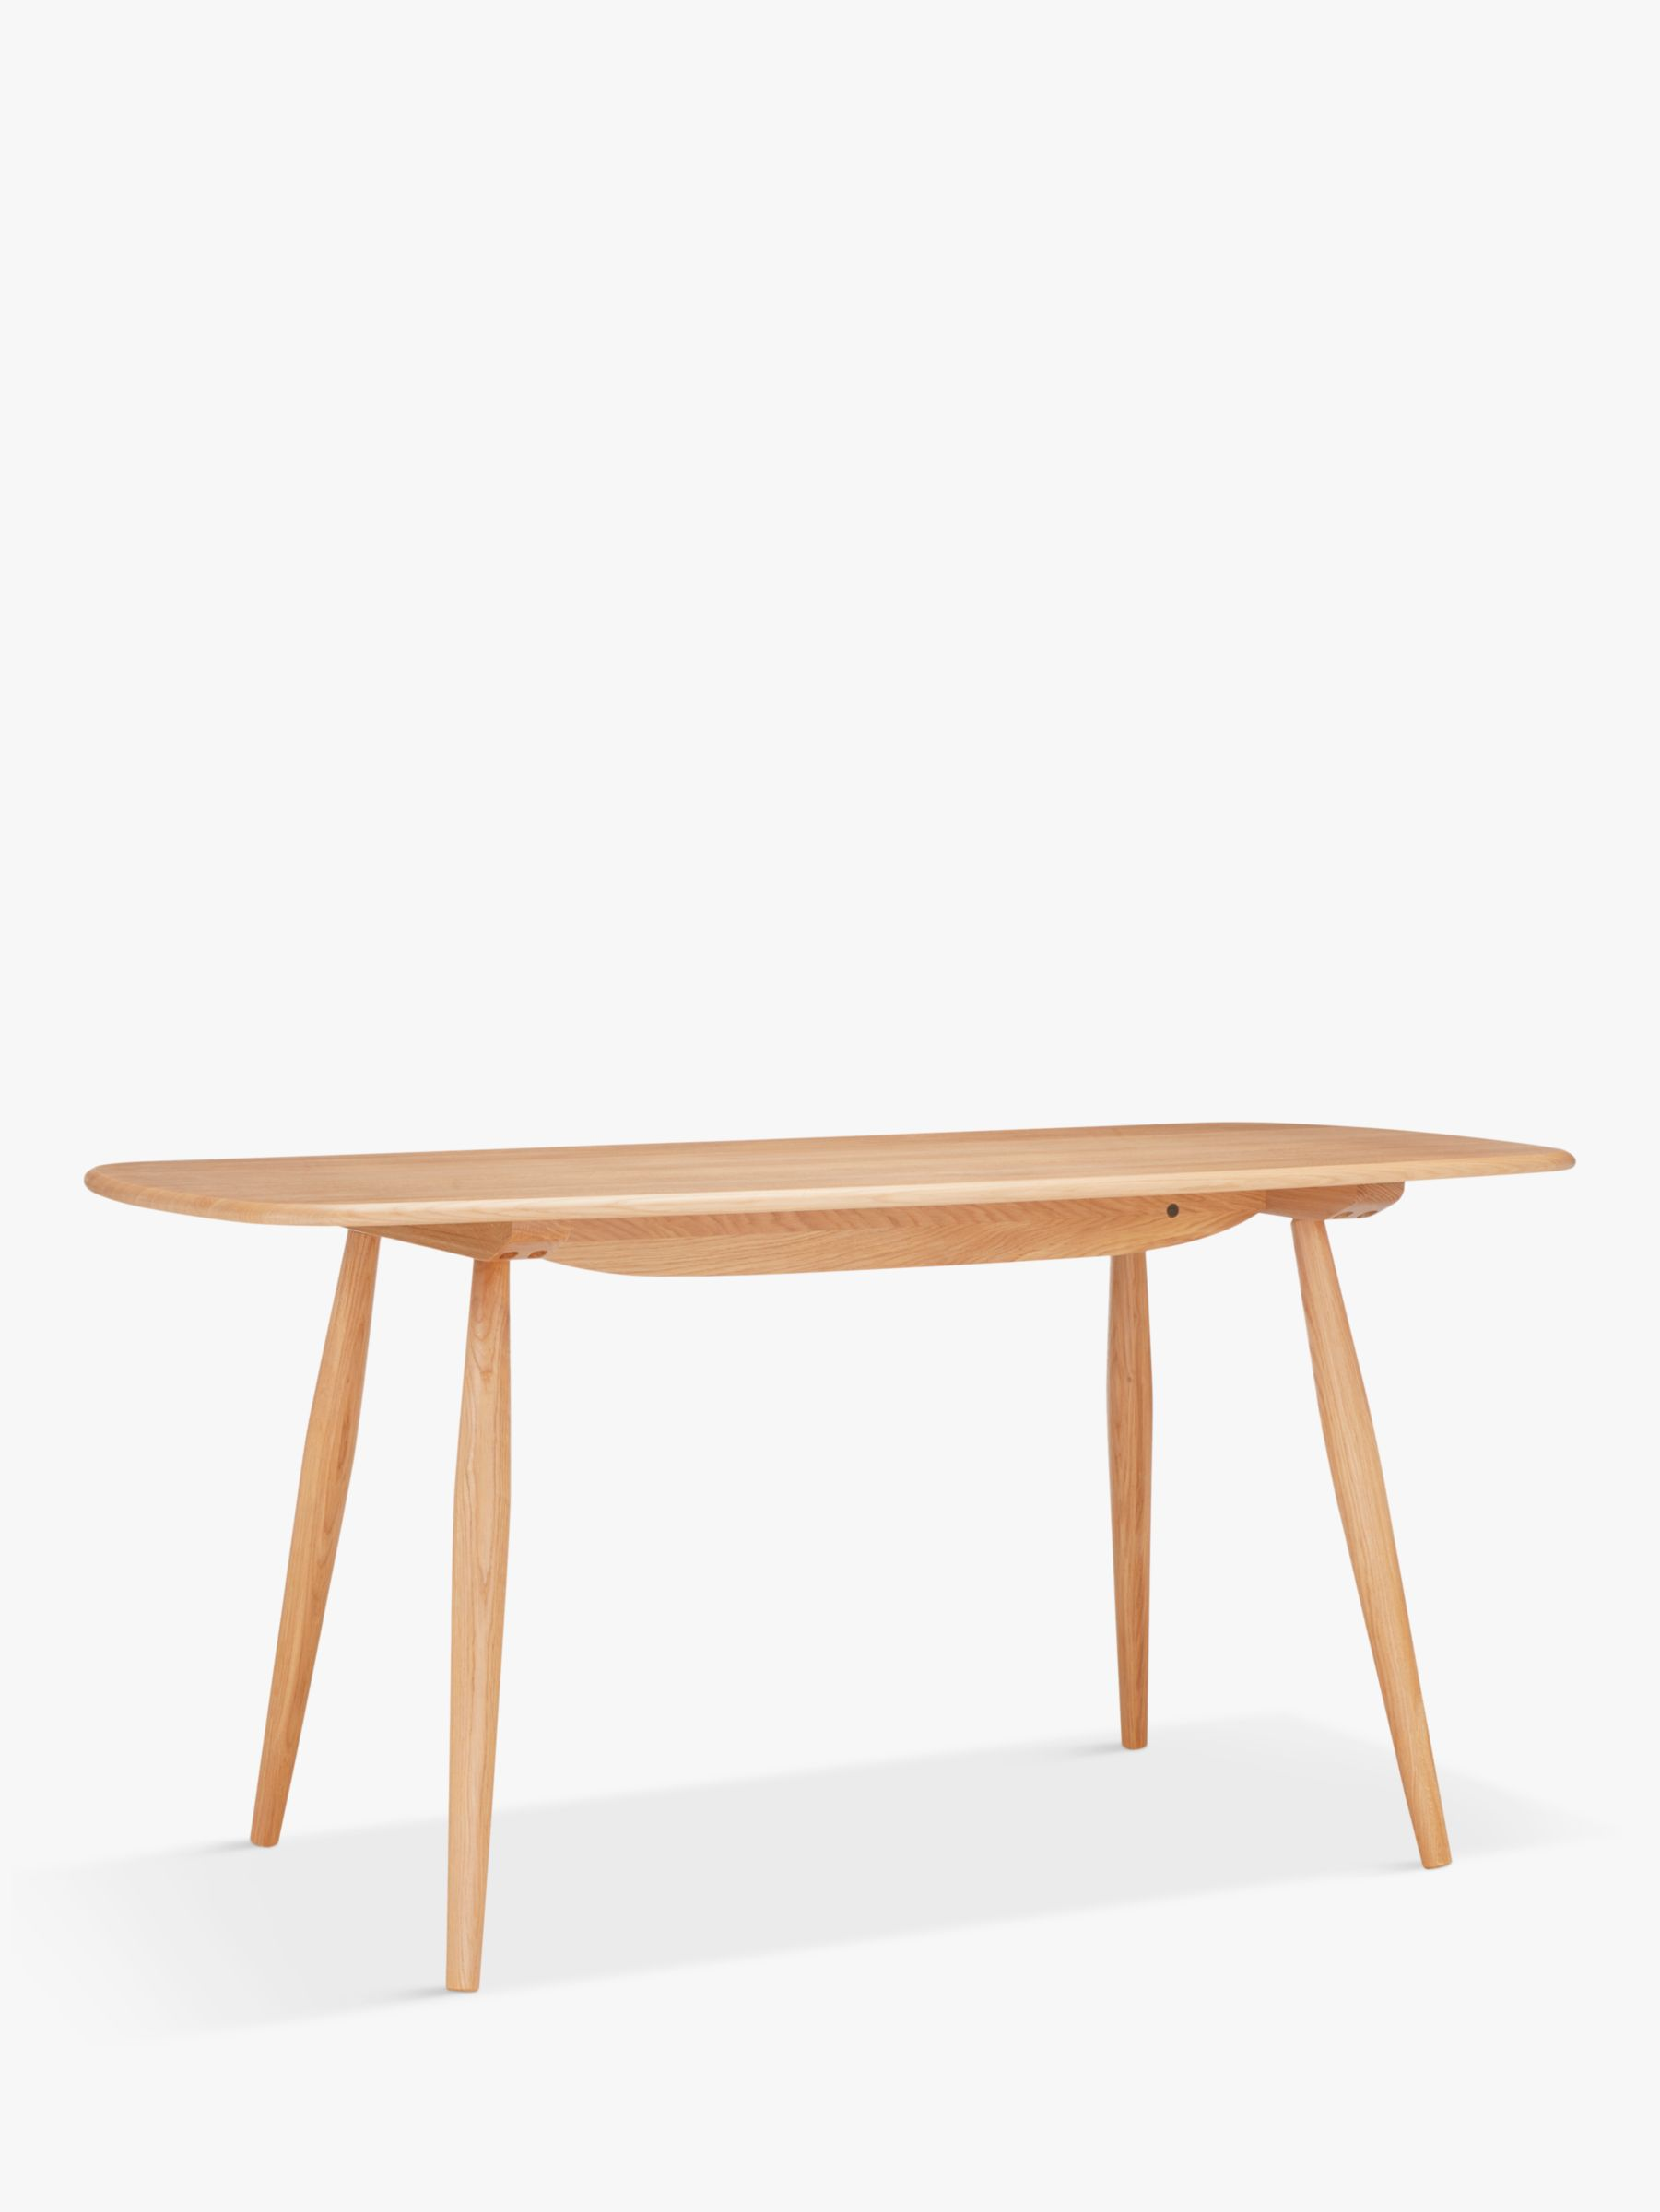 ercol for John Lewis ercol for John Lewis Shalstone Dining Table